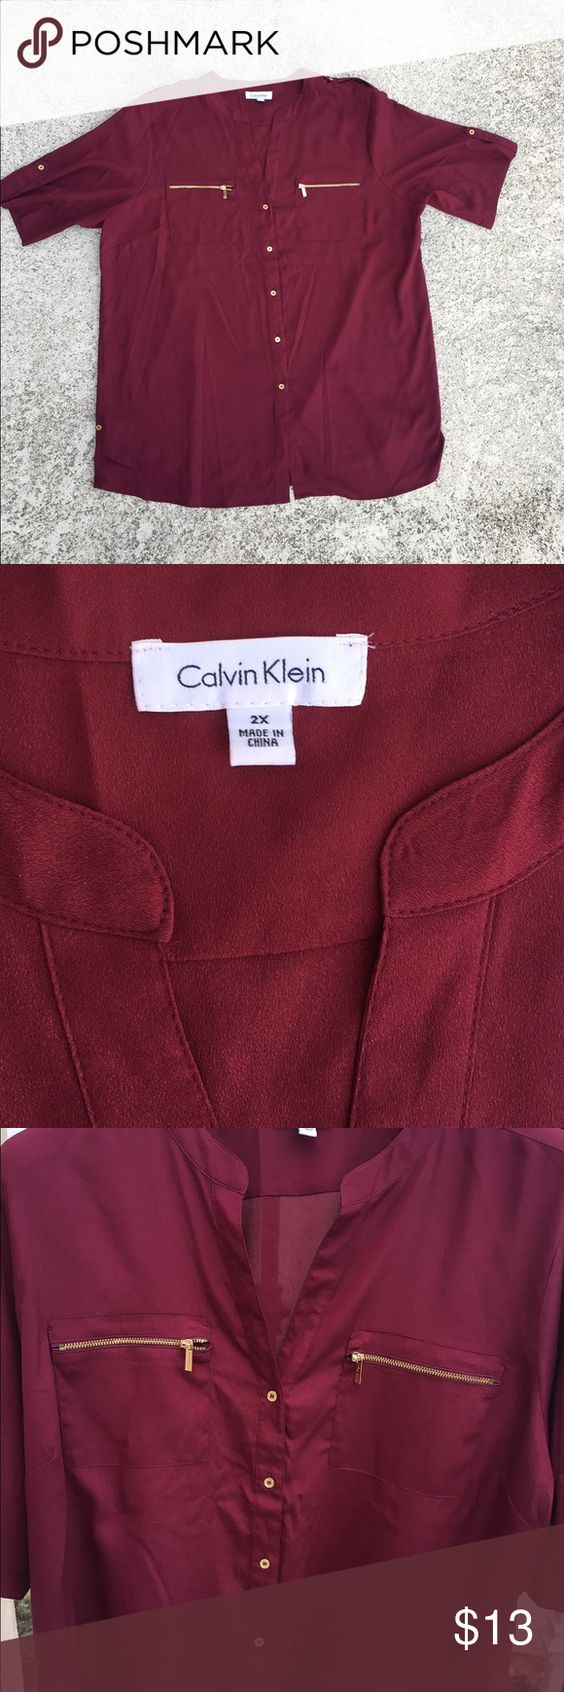 Calvin Klein Plus Size 2X Shirt Blouse New - No signs of wear - Size 2X - Gold zip detail with Calvin Klein logo - Excellent condition - Burgundy color Calvin Klein Tops